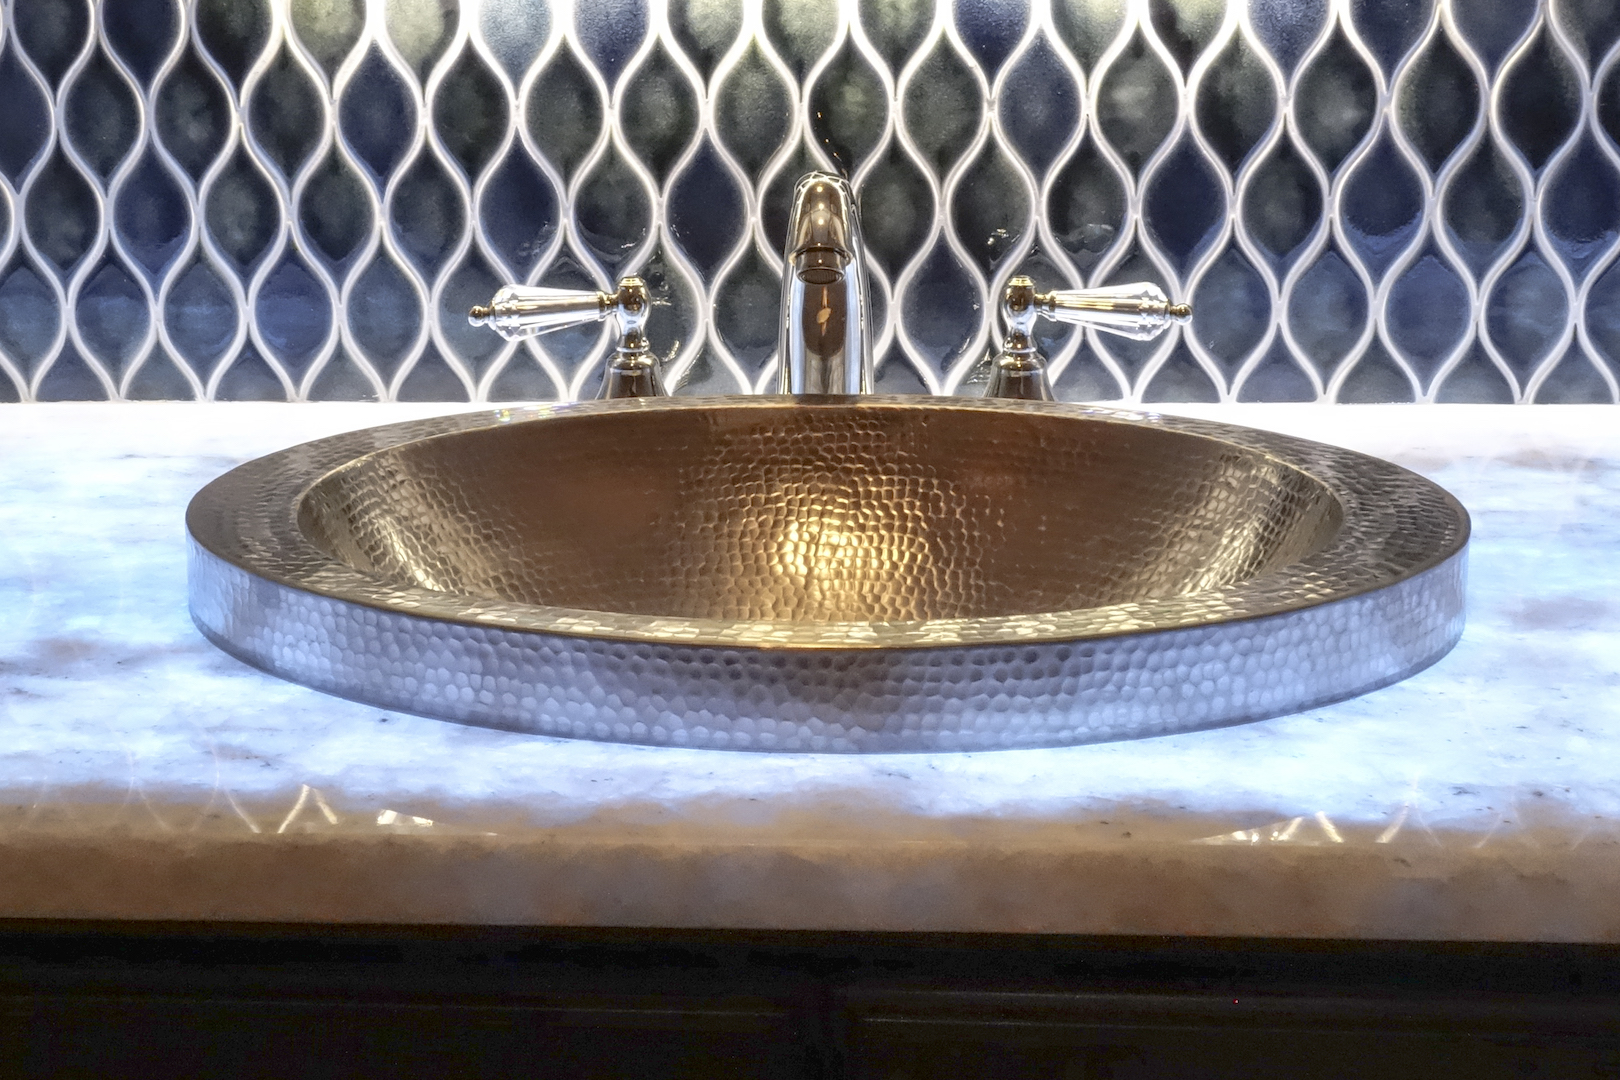 And a handmade hammered copper nickel plated sink...